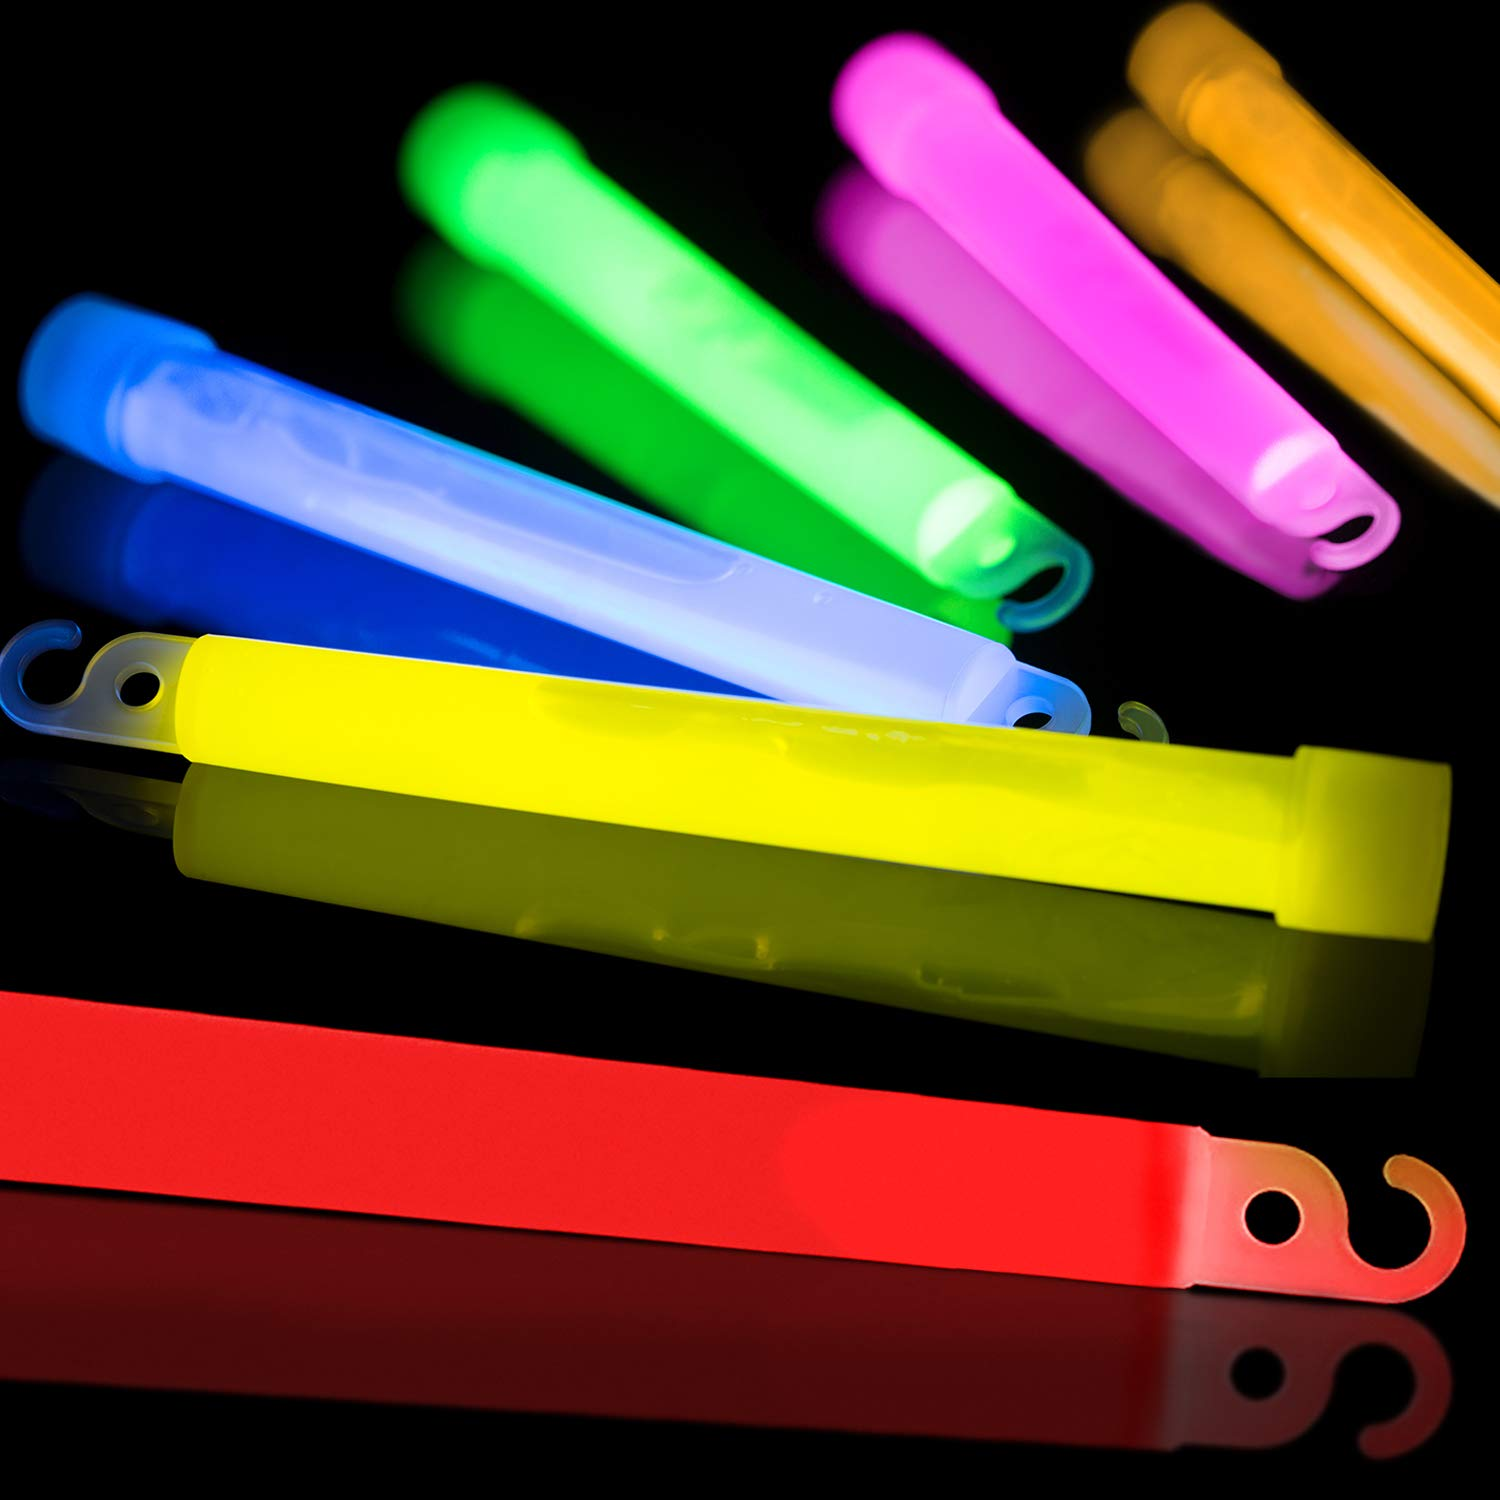 30 Pack Glow Sticks Bulk - Glow in The Dark Party Supplies - Waterproof and Non Toxic Neon Party Light Sticks for Kids and Adults (Multi Color, 30 Pack) by Glow Mind (Image #2)